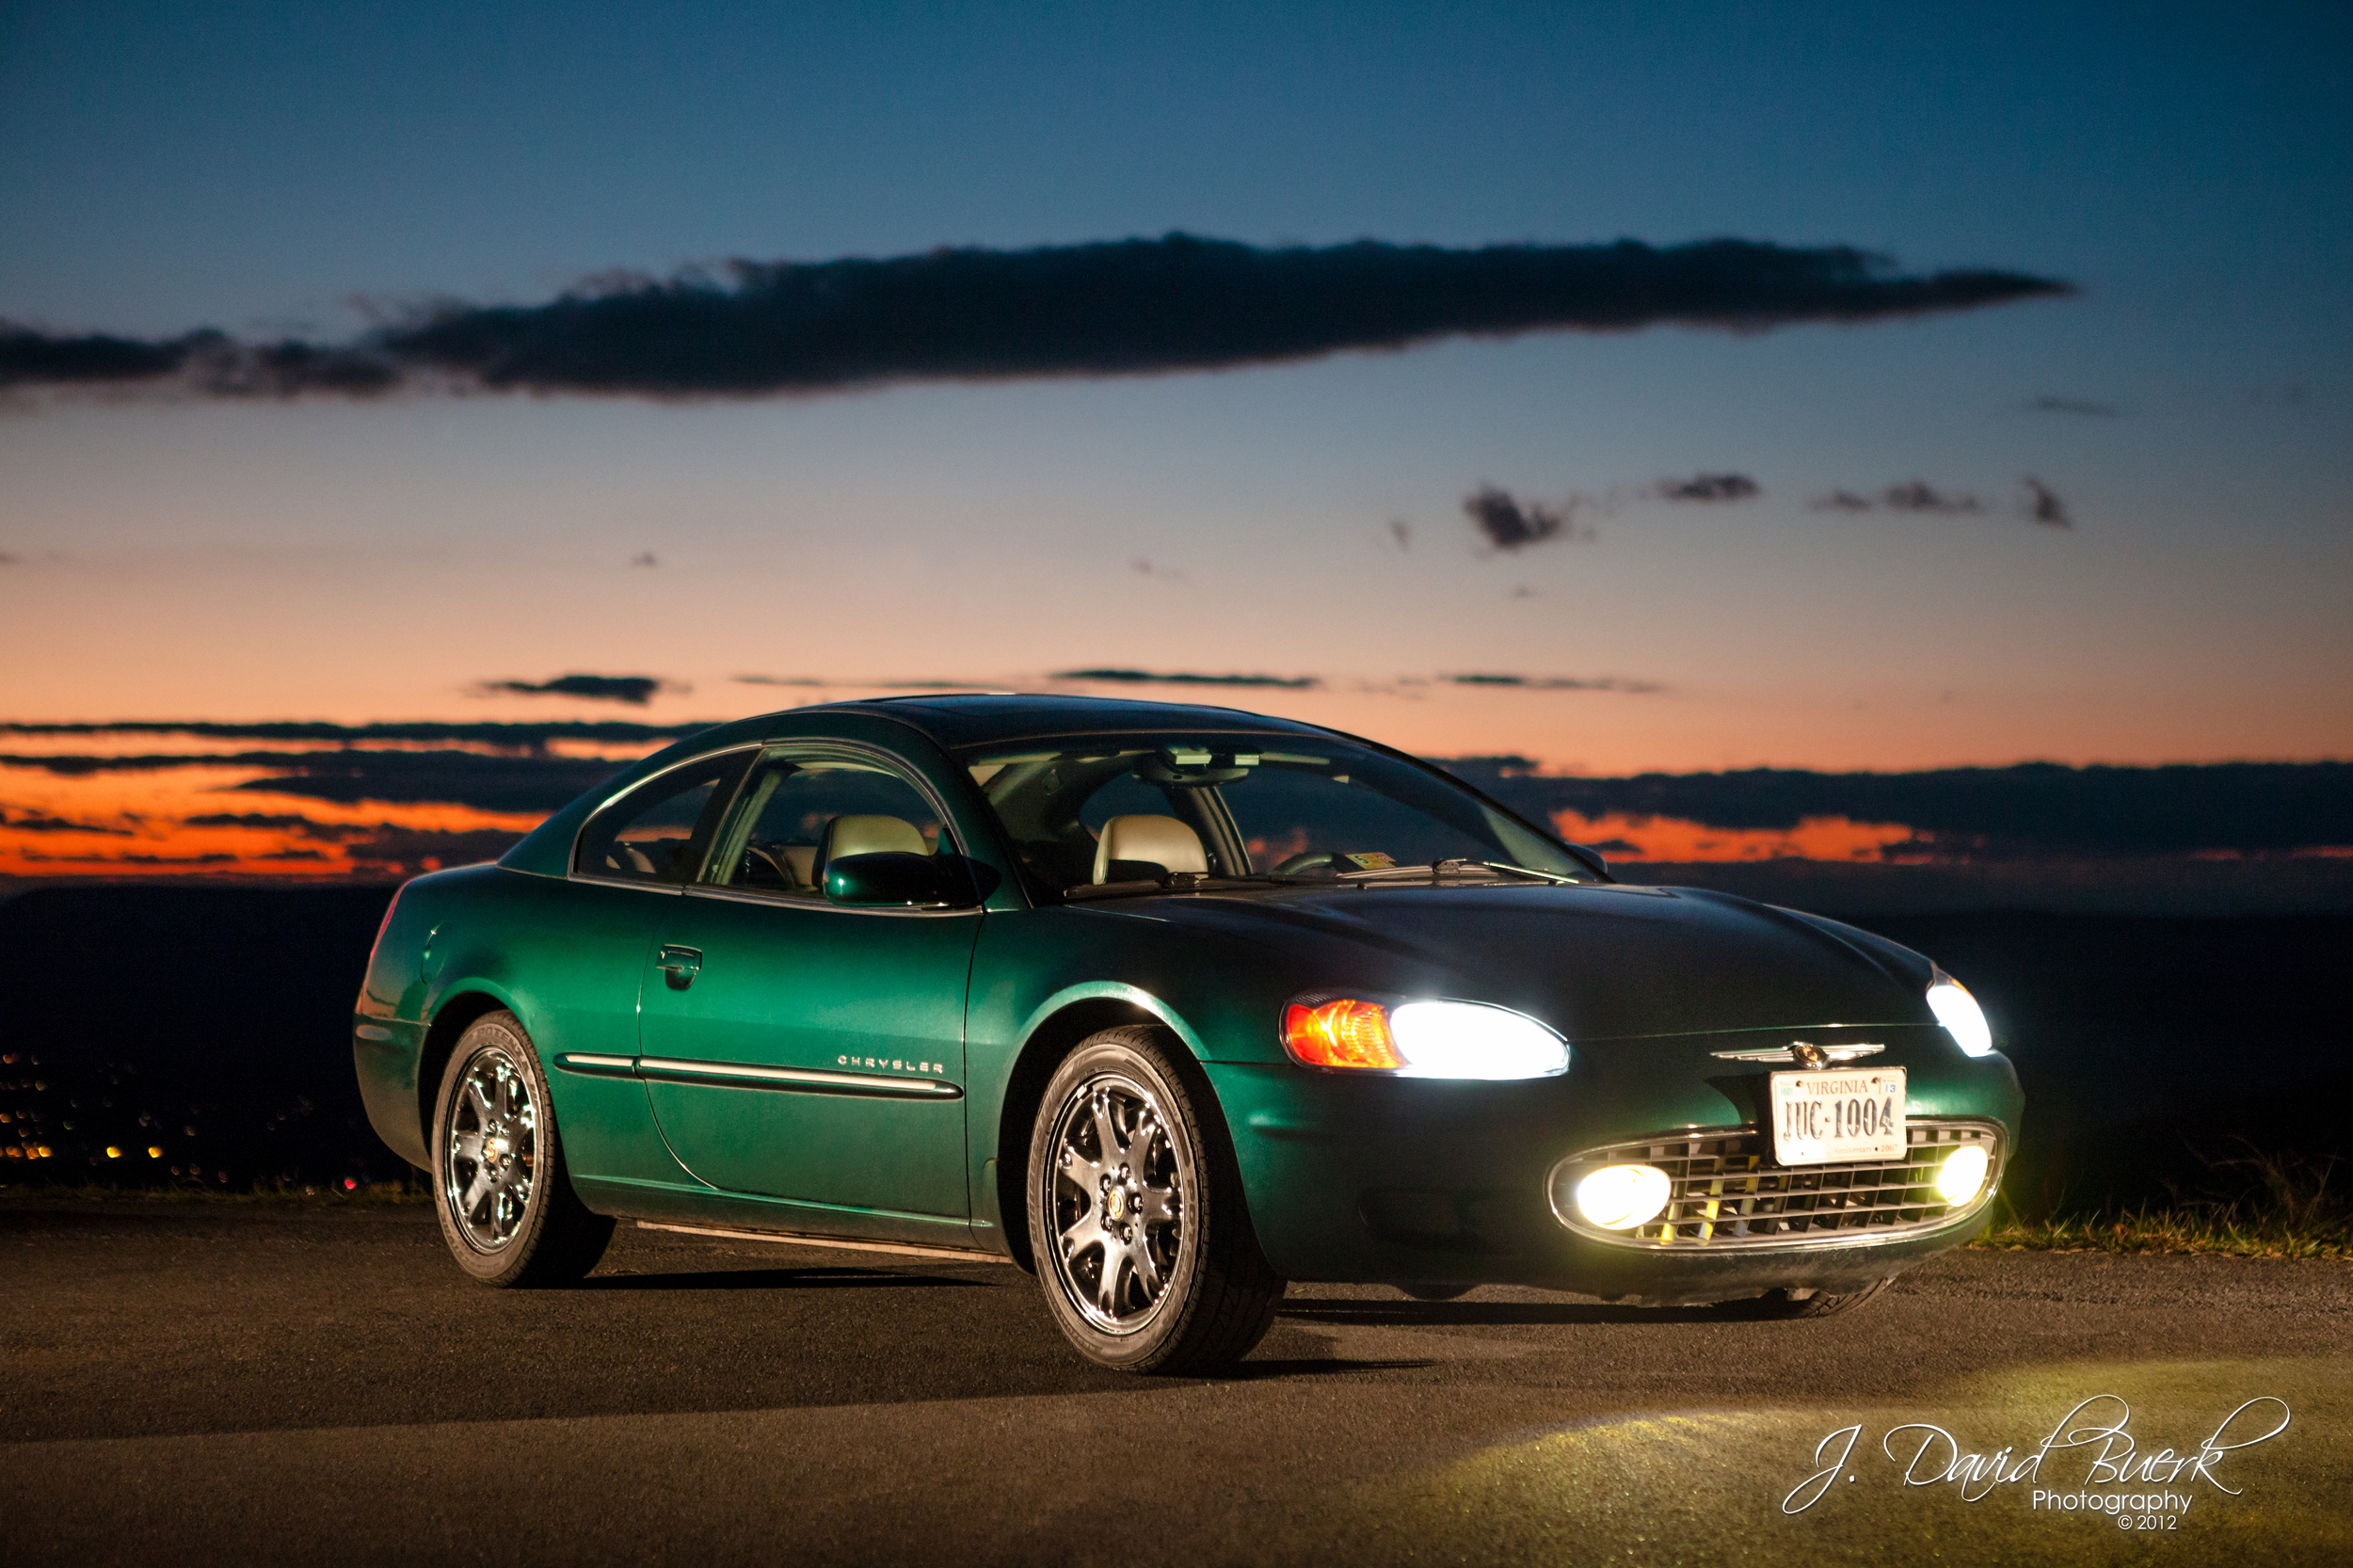 It's green!  And it's the only decent photo of my car!